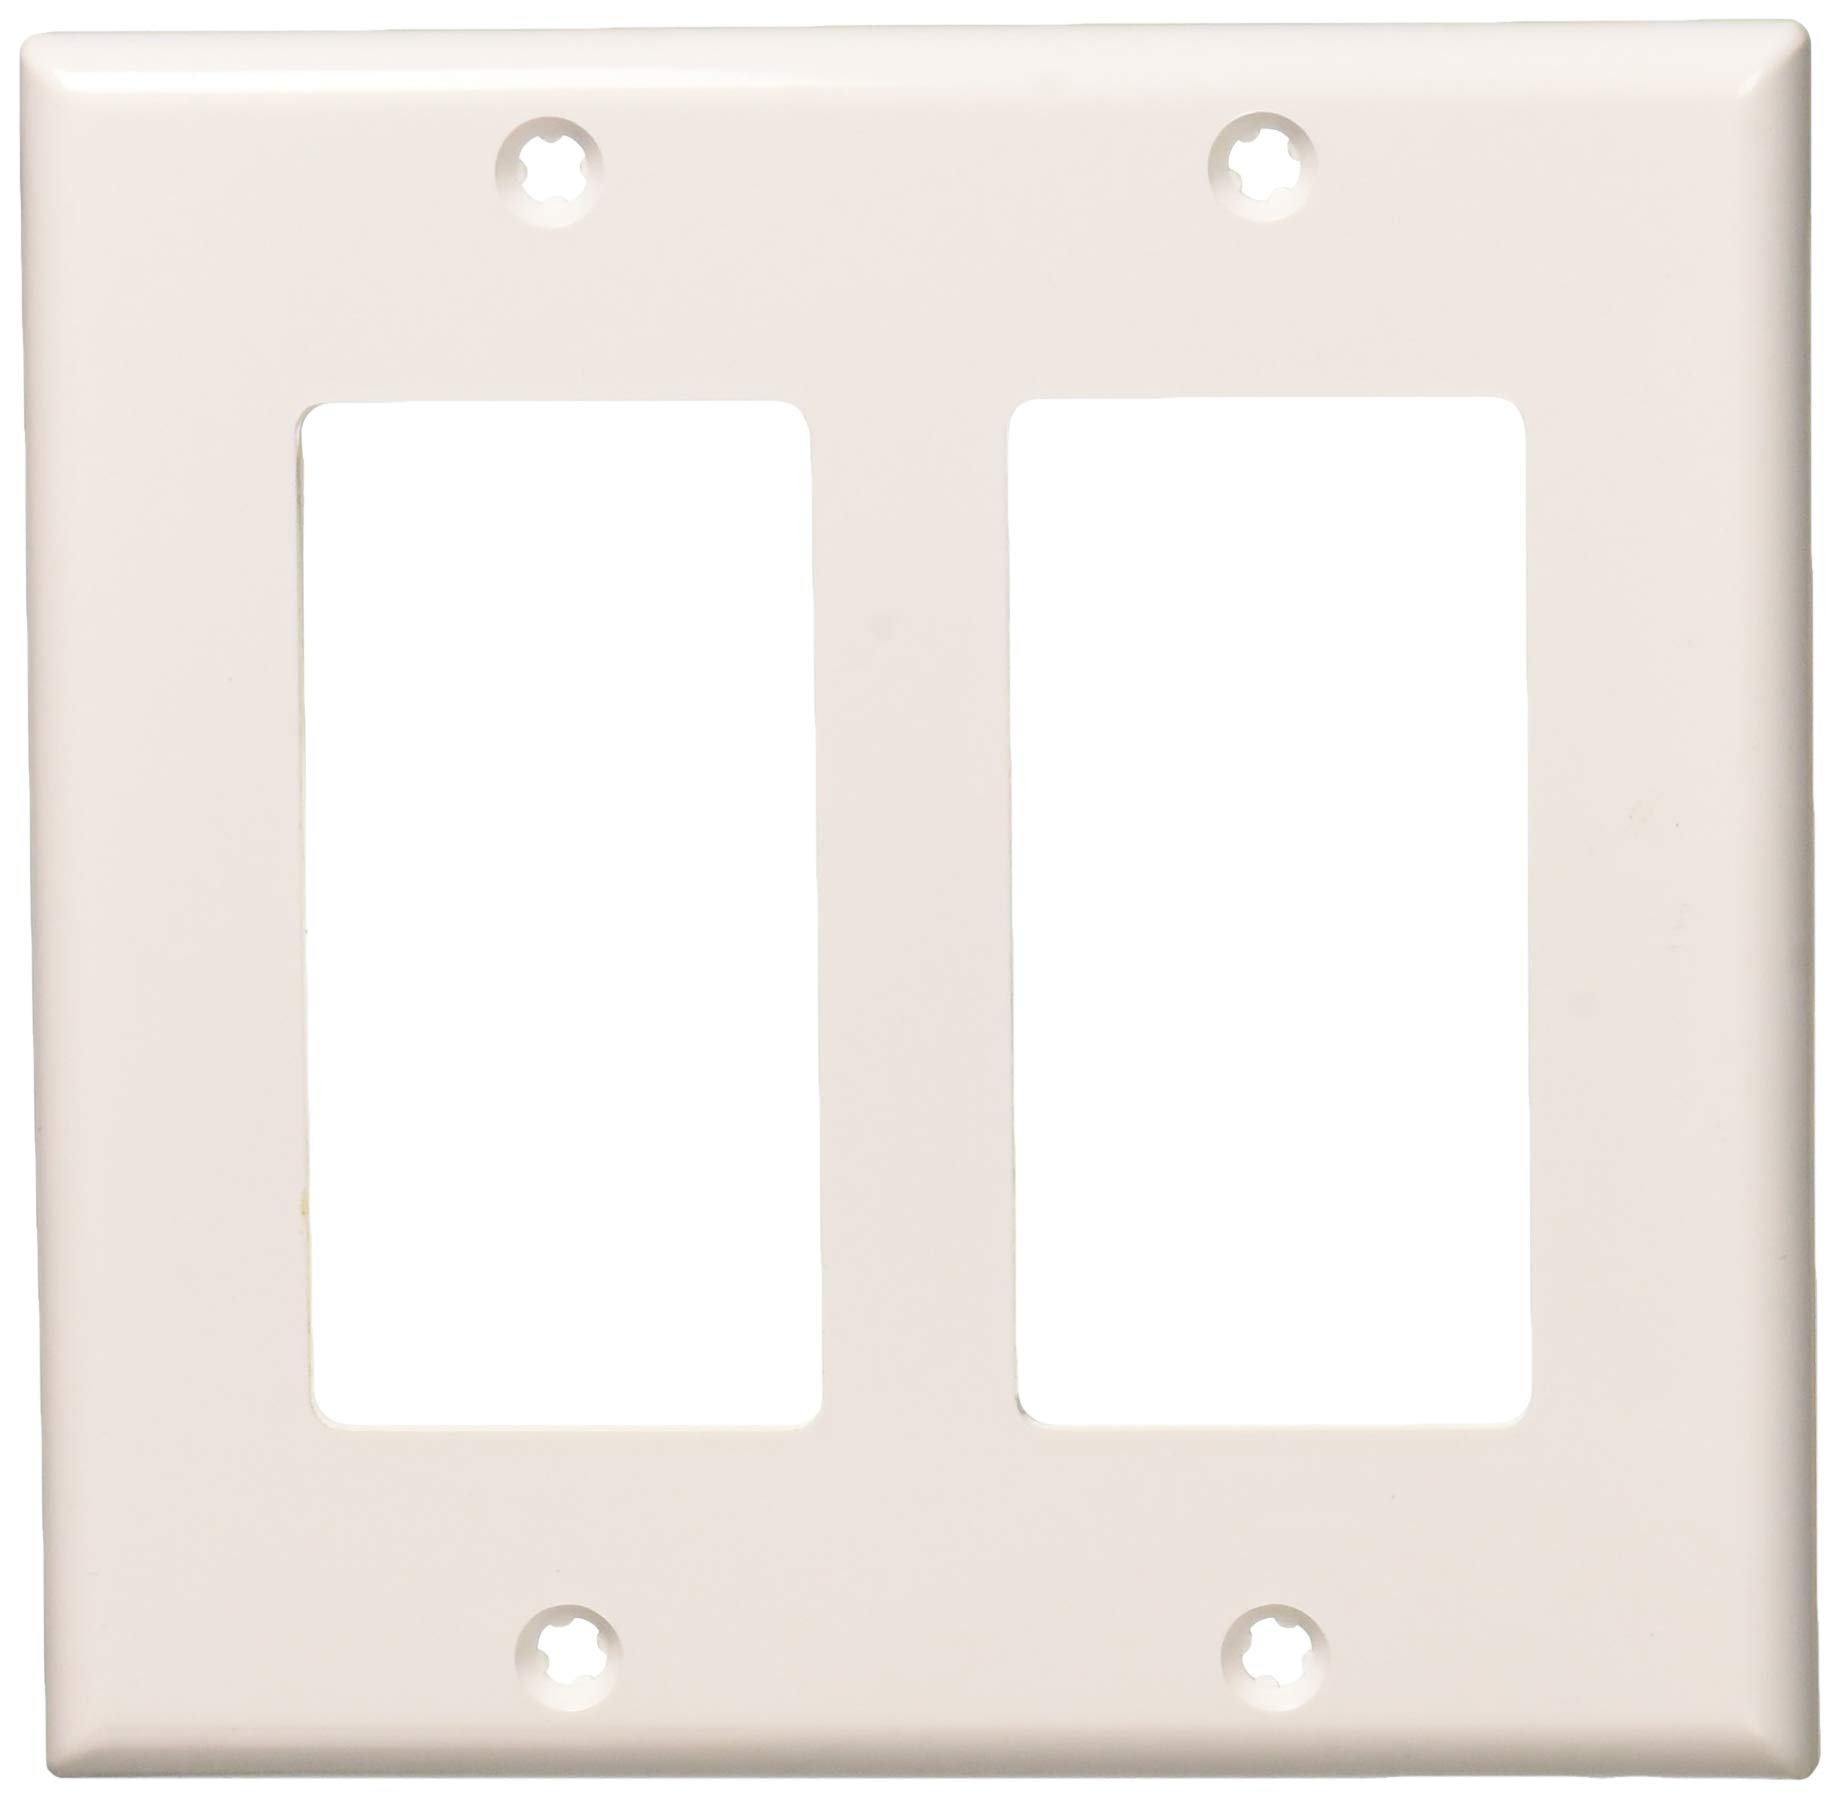 Leviton 80409-NW 2-Gang Decora/GFCI Device Decora Wallplate, Standard Size, White, 25-Pack